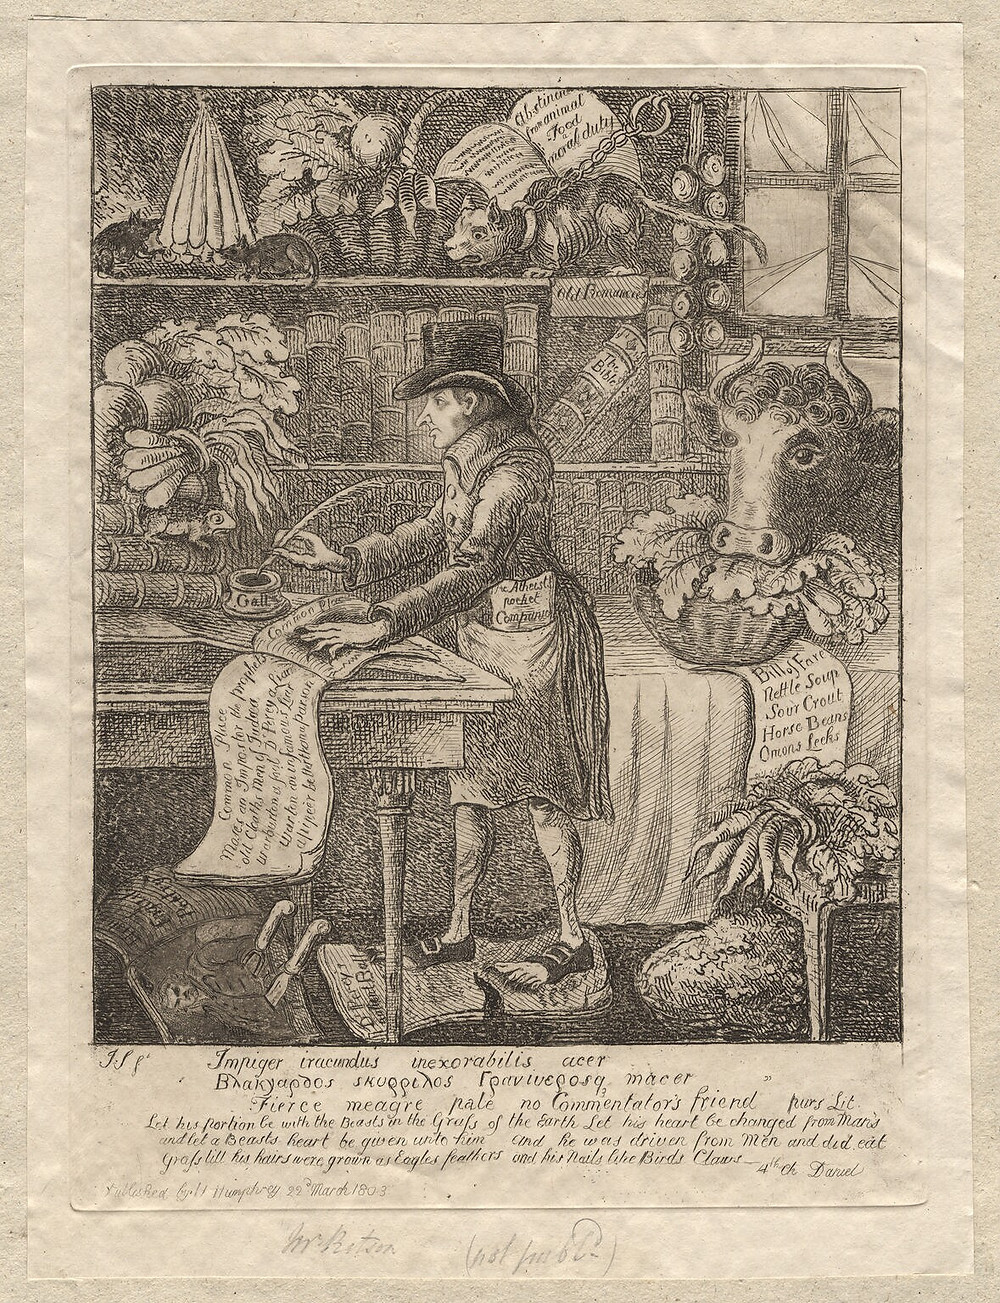 'Impiger iracundus inexorabilis acer', an etching mocking Joseph Ritson for his vegetarianism and compassion for animals, by James Sayers, published by Hannah Humphrey, 22nd March 1803. Note that he wears sandles, a widely-recognised stereotype of the vegetarian even then, while a cow placidly eats leaves through his window and a cat is tethered to prevent her from devouring a nearby mouse.